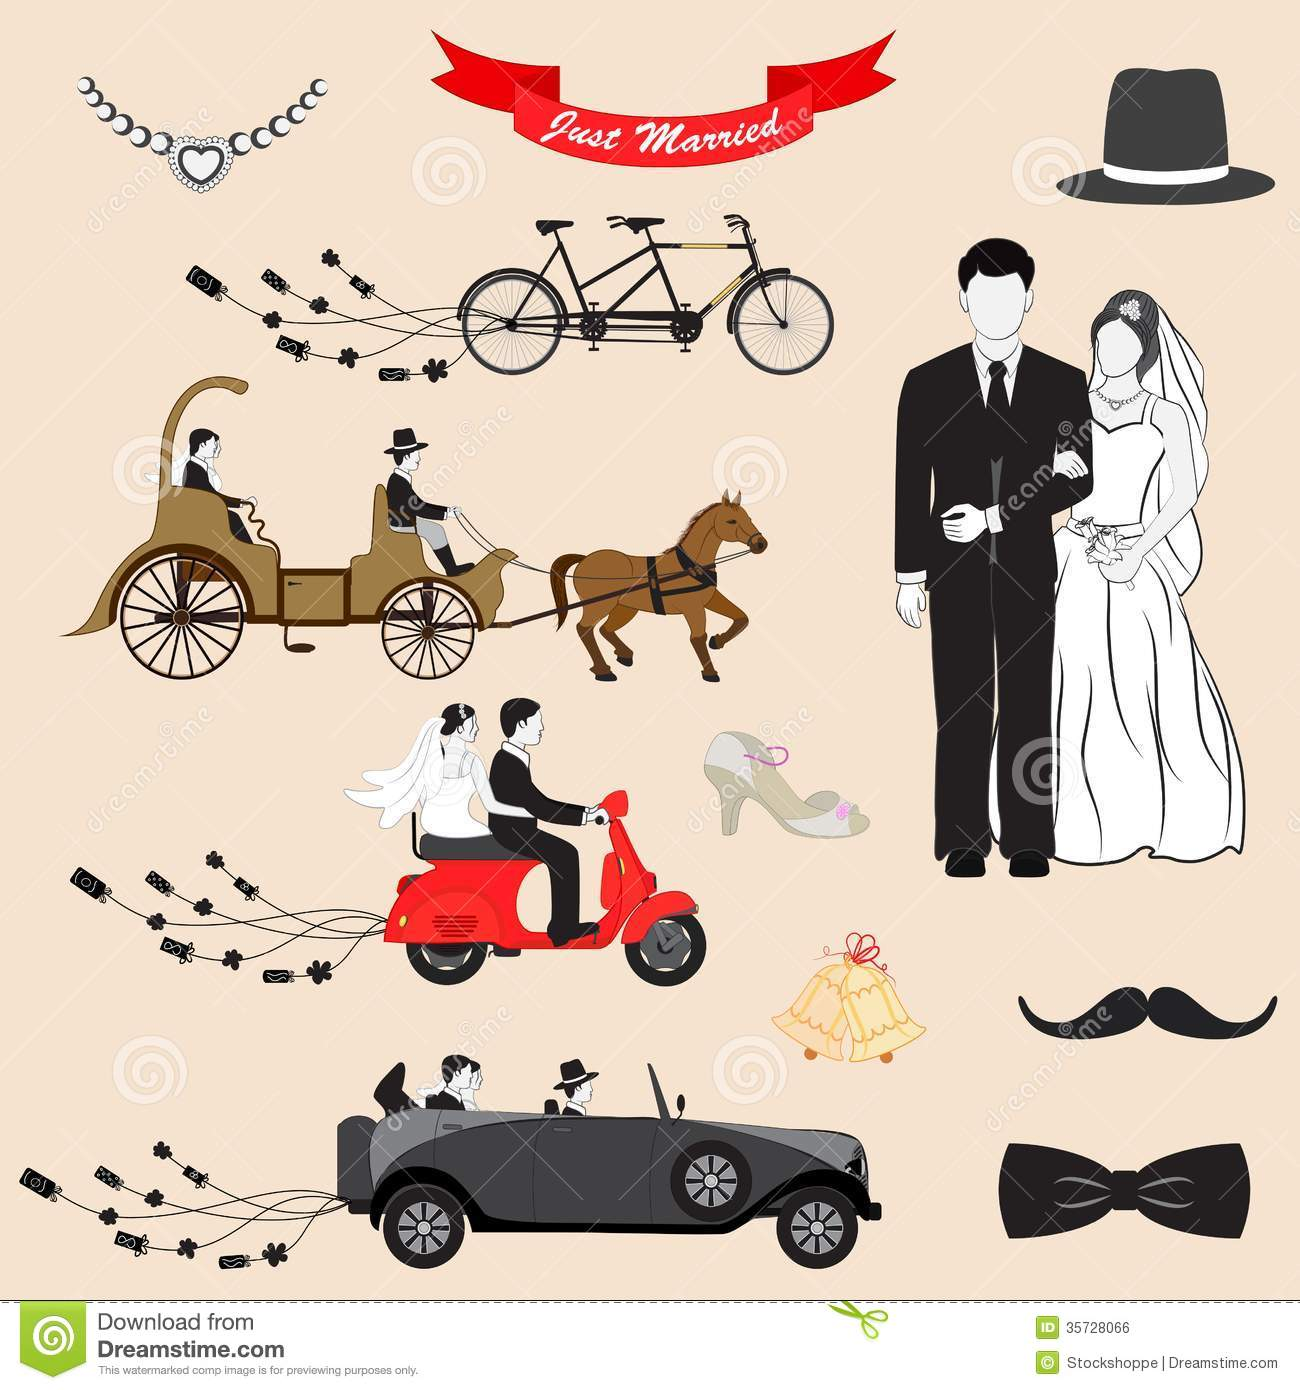 Just married royalty free stock image image 35728066 Married to design